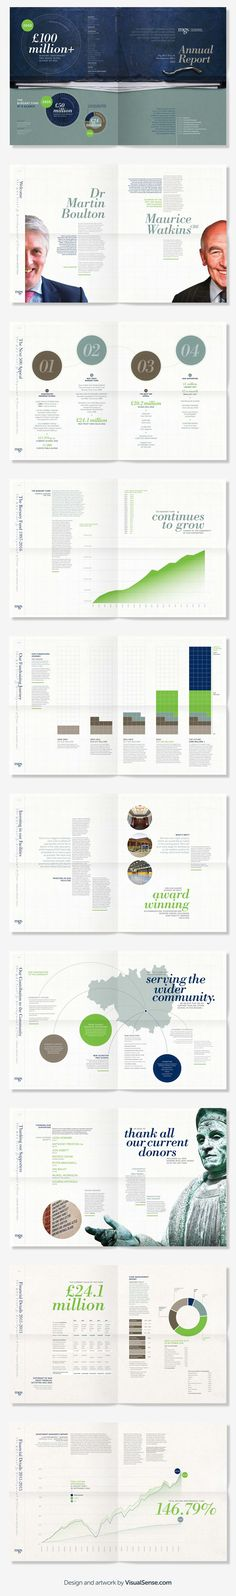 Manchester Grammar School Annual Report Design 2016: Functioning as a branding and marketing piece as well as a source of necessary financial information. Harnessing the power of layout, typography and the graphic interpretation of data, to visually tell the MGS story succinctly and 'at-a-glance'. We wanted to push the boundaries of what is expected of an annual report – and thankfully MGS embraced our curiosity!